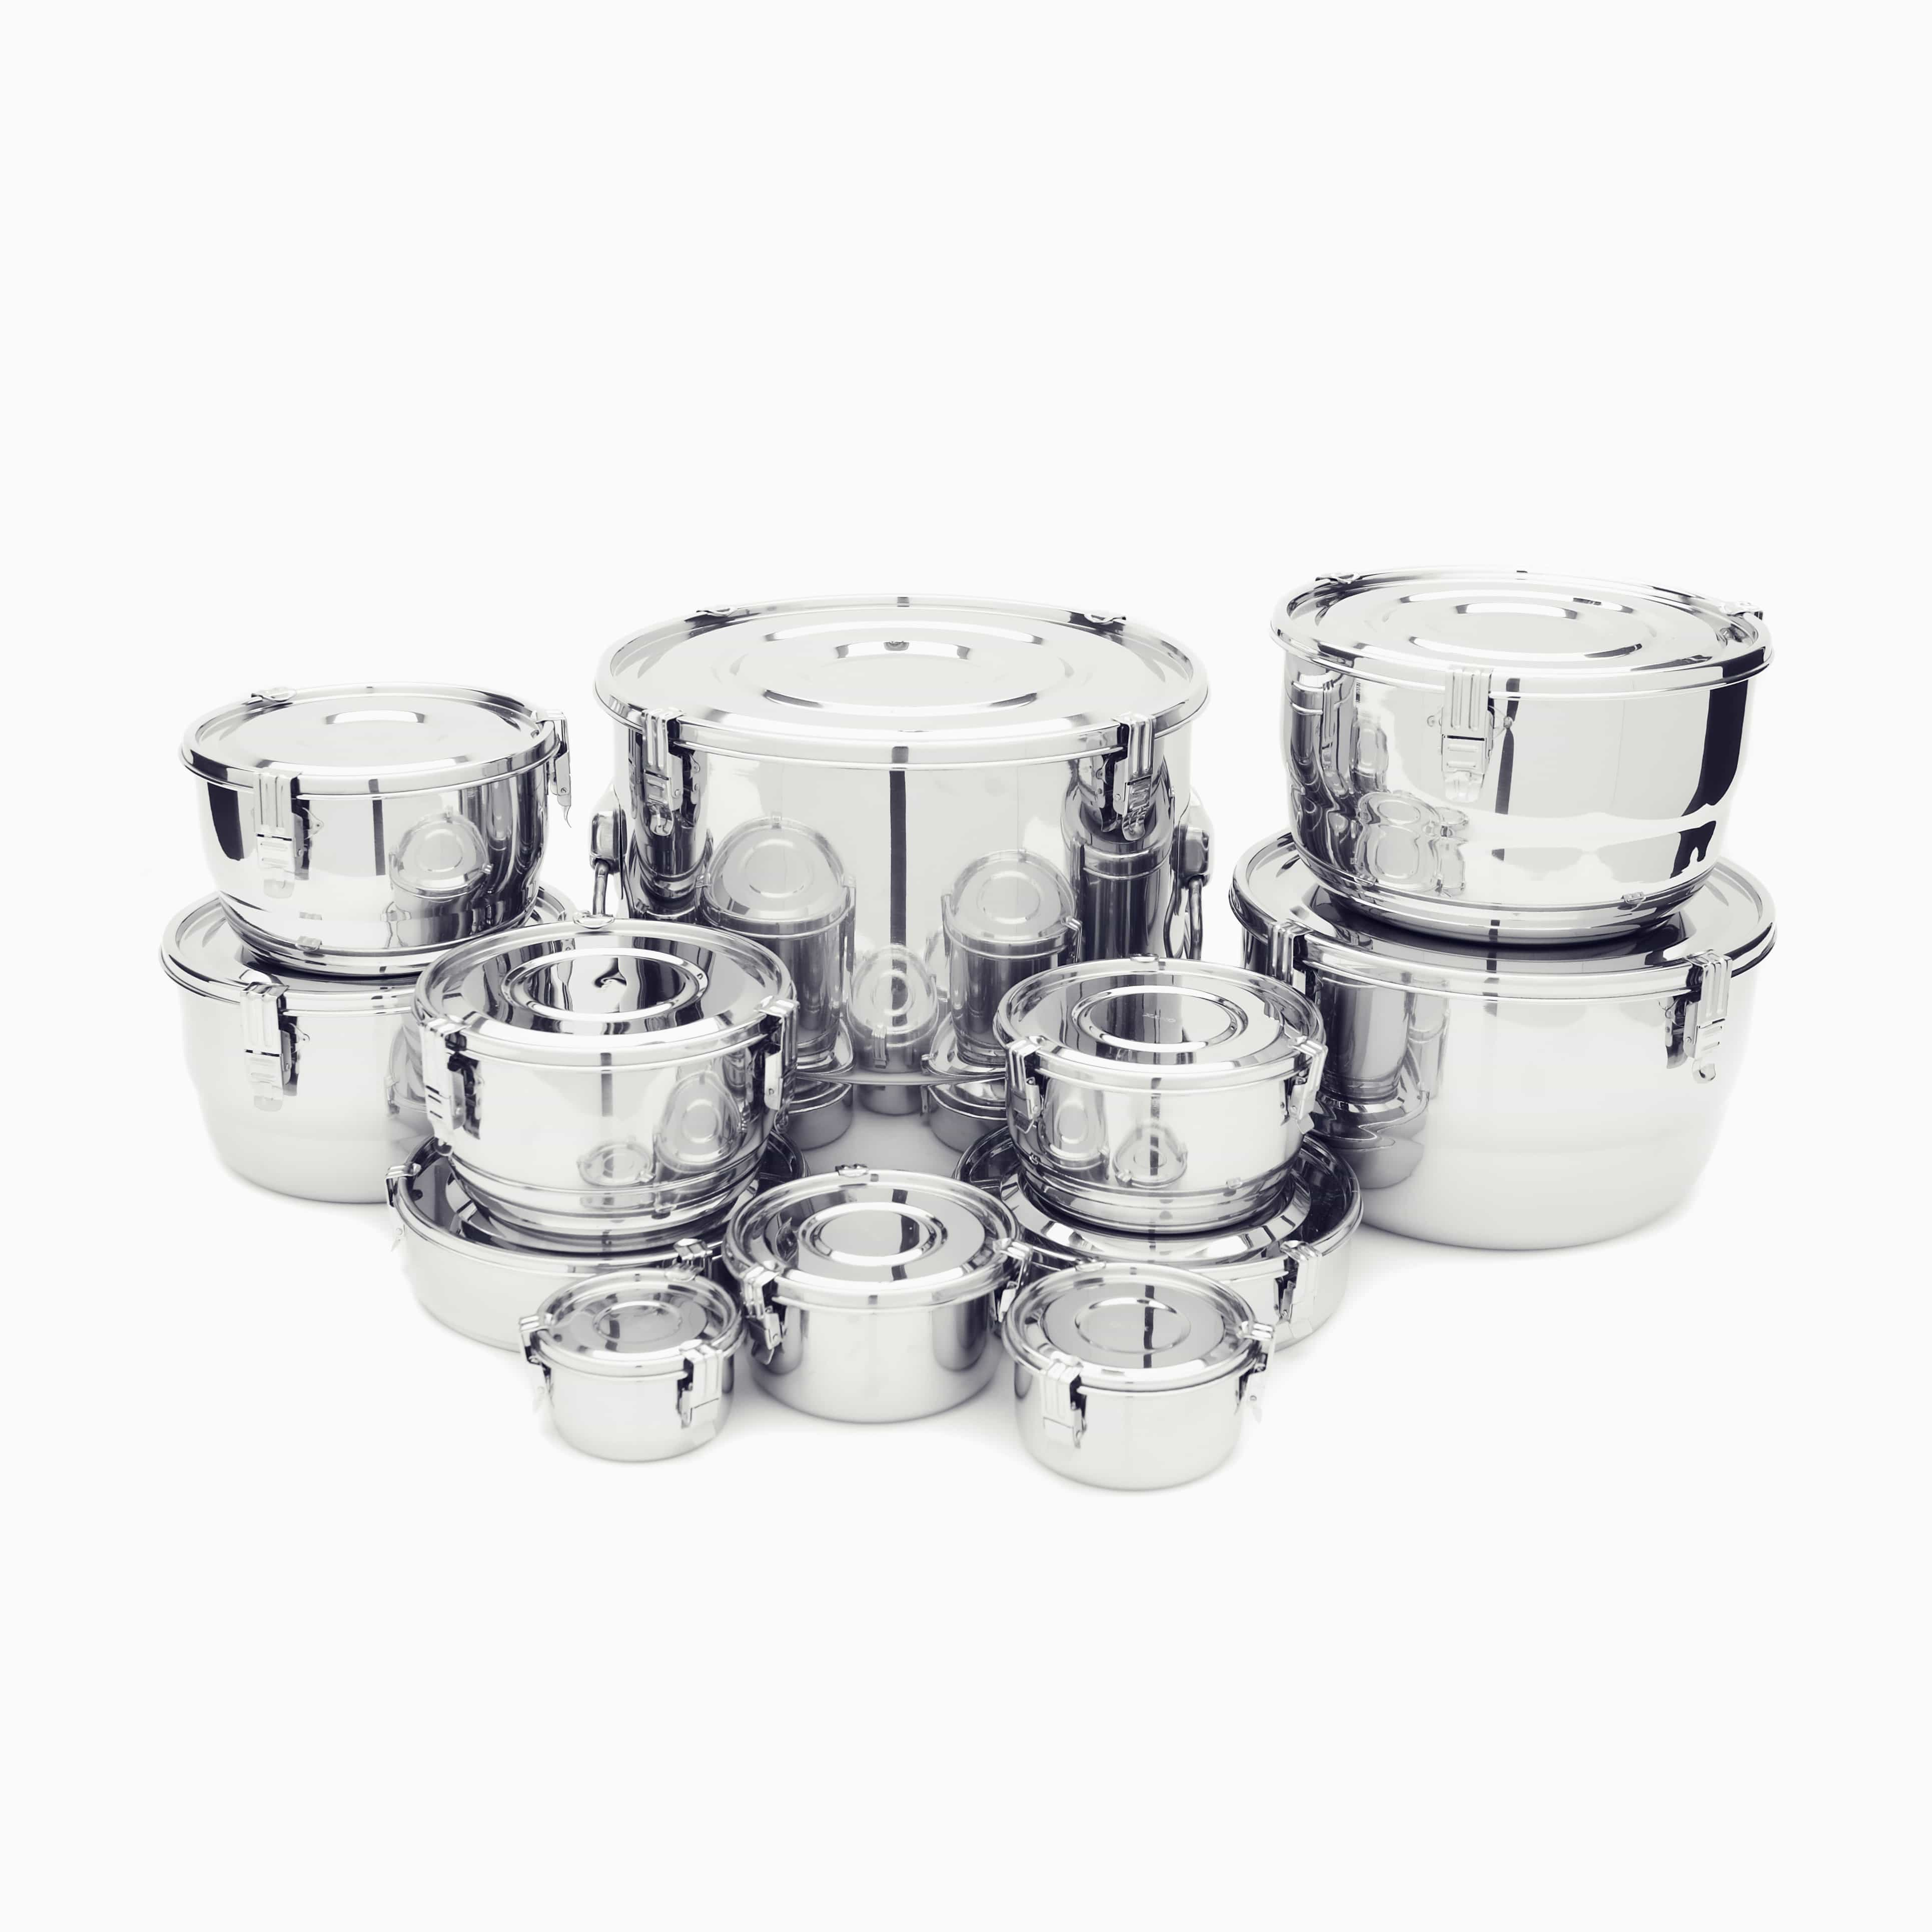 Airtight Stainless Steel Cabinet ~ Airtight watertight stainless steel food storage